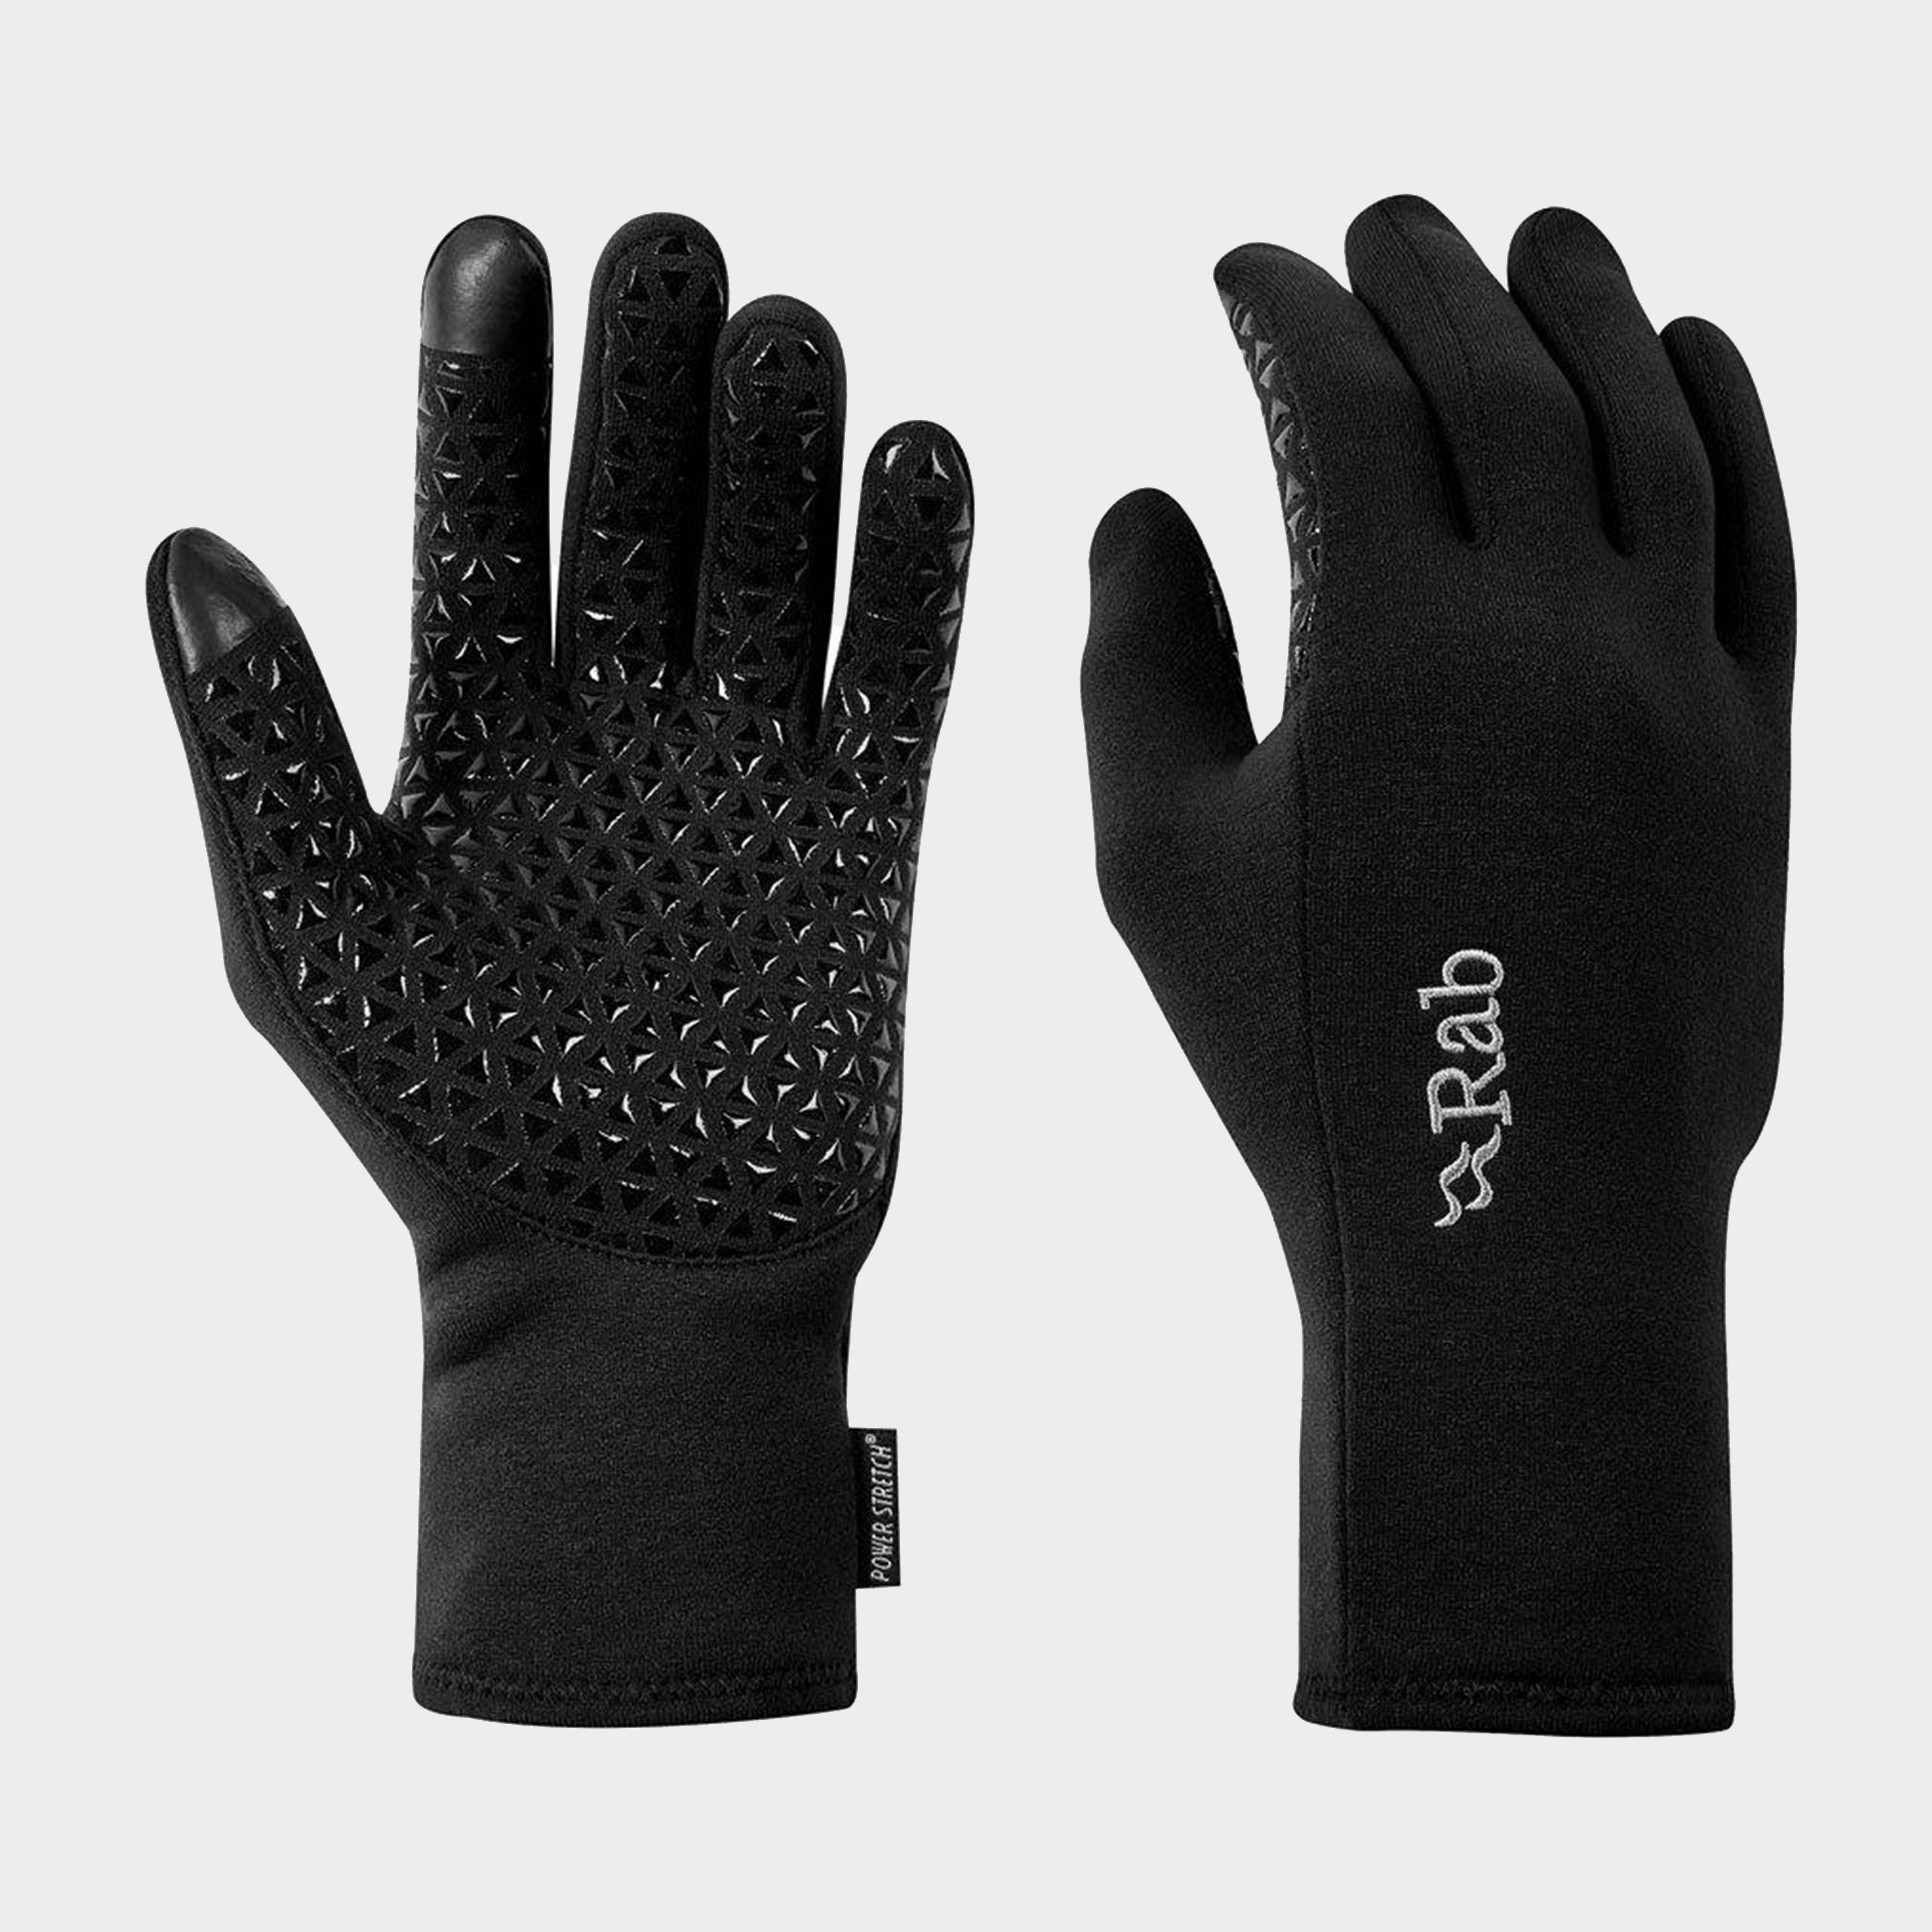 Rab Power Stretch Contact Grip Glove, Black